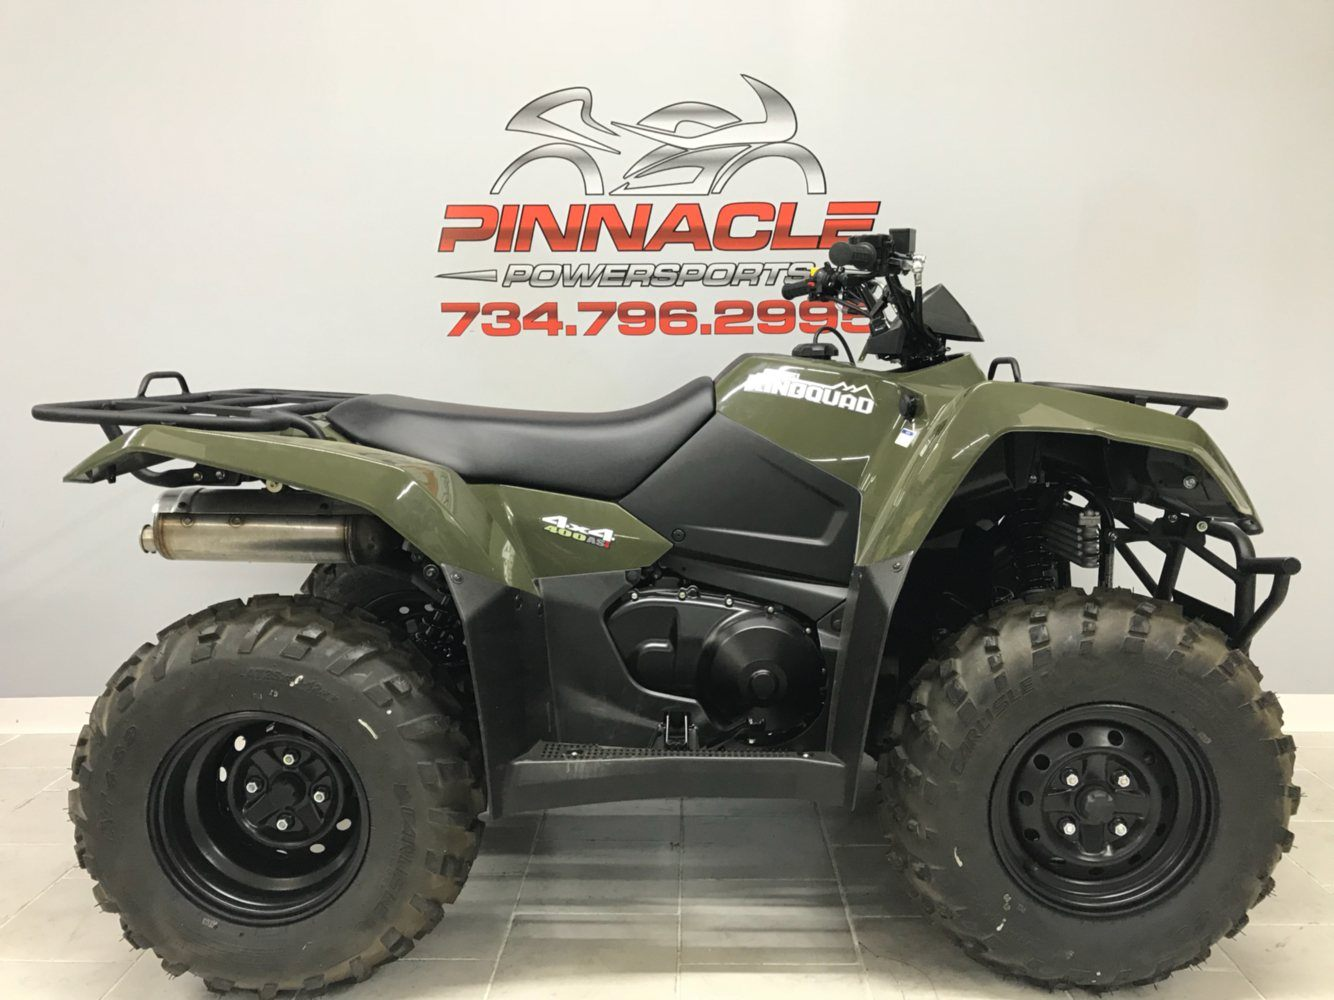 2019 Suzuki KingQuad 400ASi in Belleville, Michigan - Photo 1